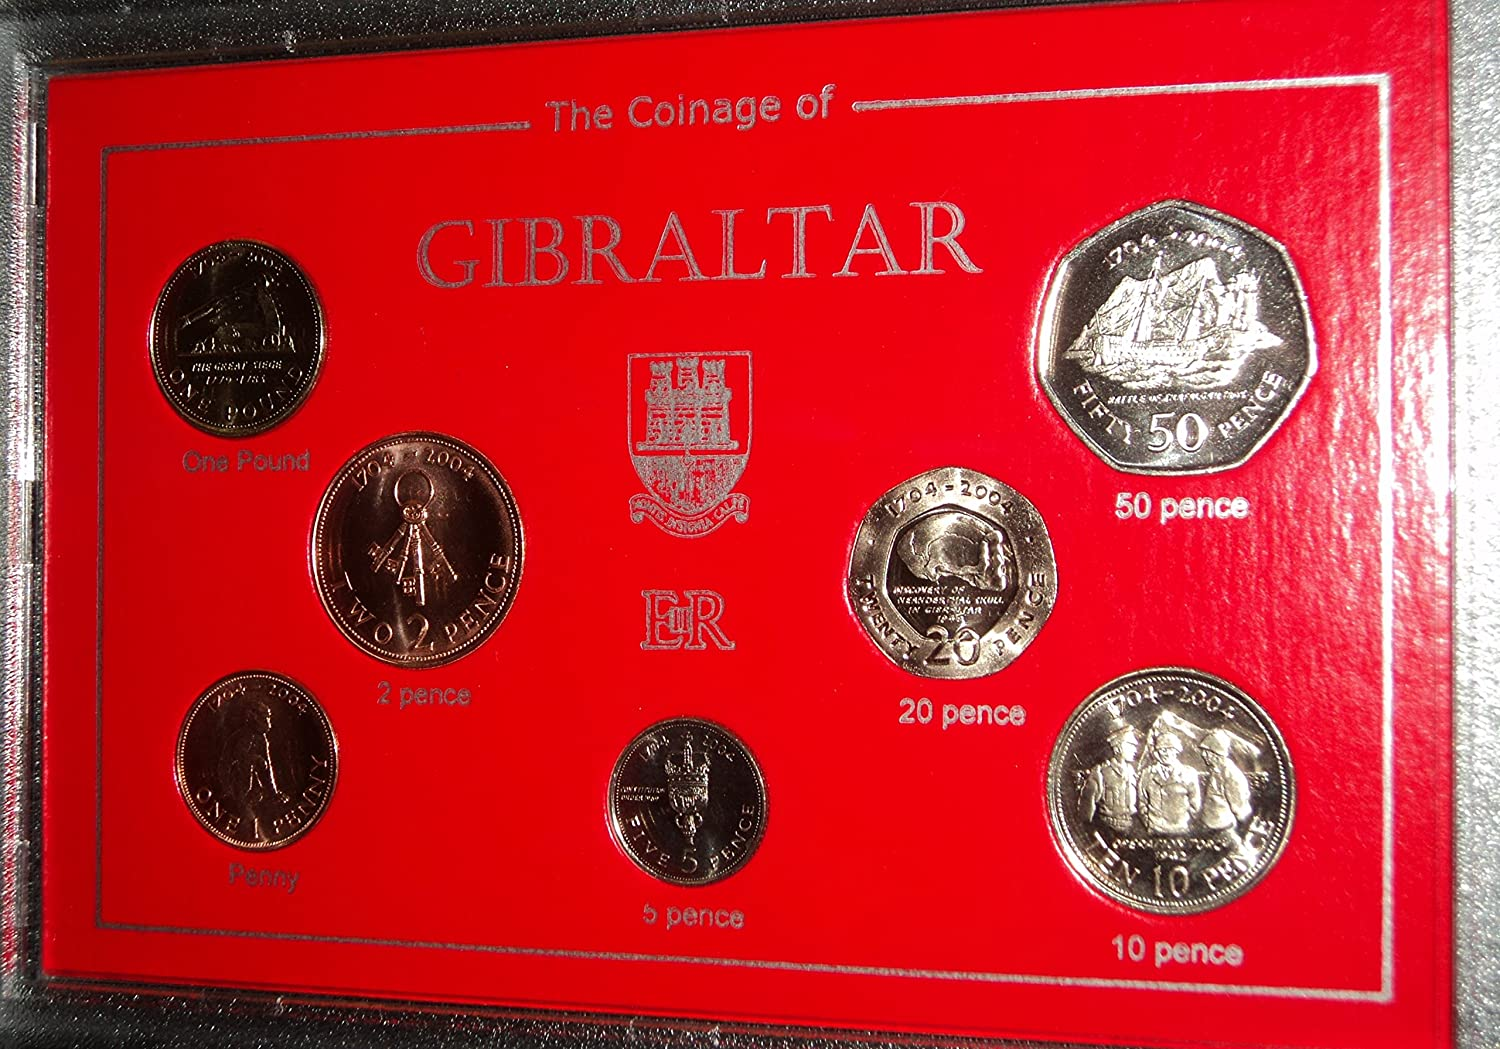 The Rock of Gibraltar (300th anniversary of British rule, 17042004) Coin Present Display Gift Set 2004